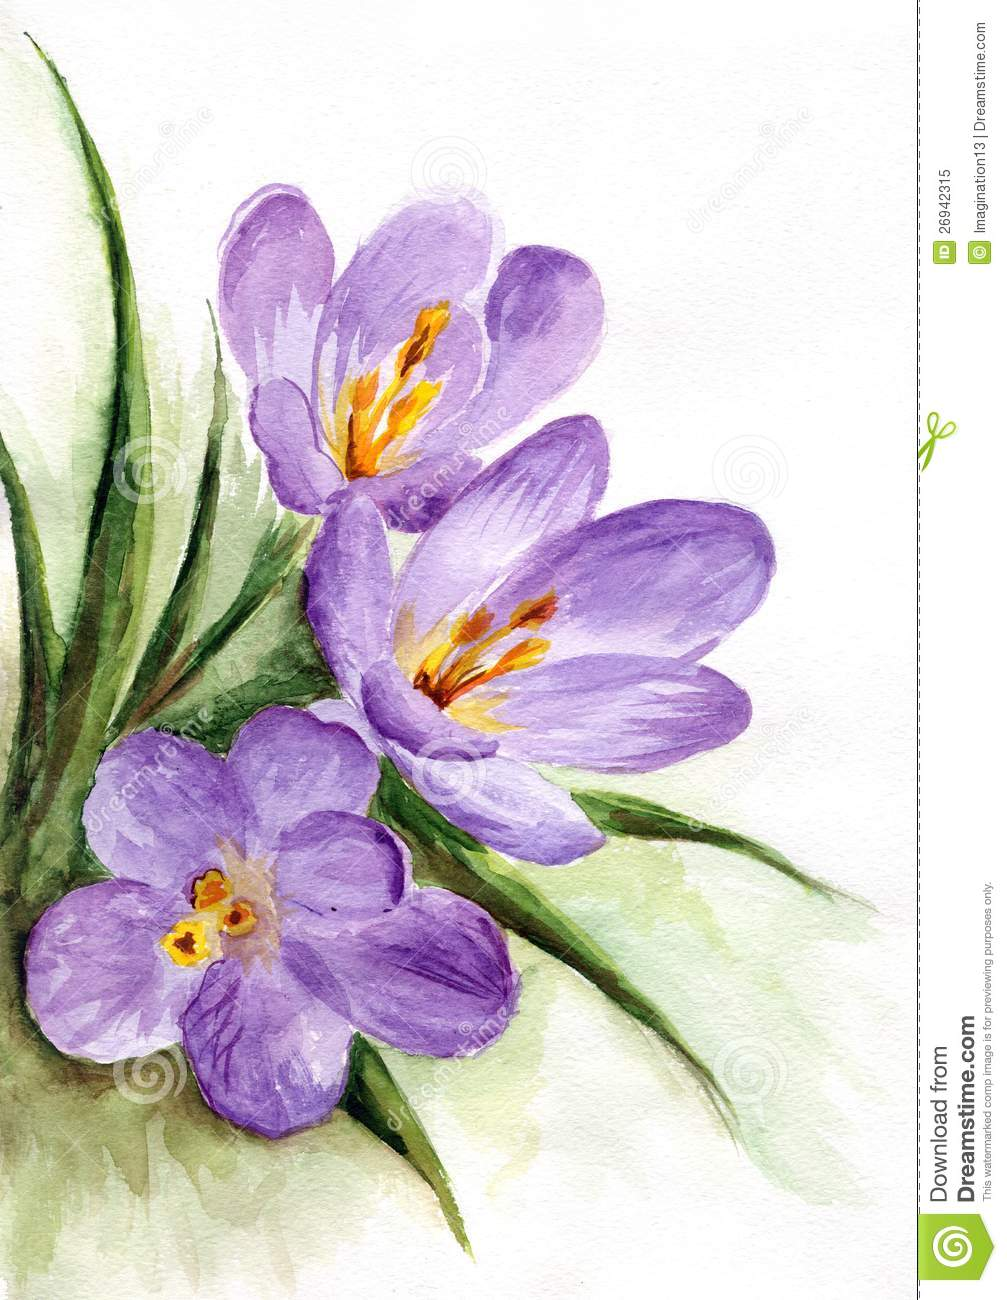 Watercolor spring flowers royalty free stock photo for Spring flowers watercolor